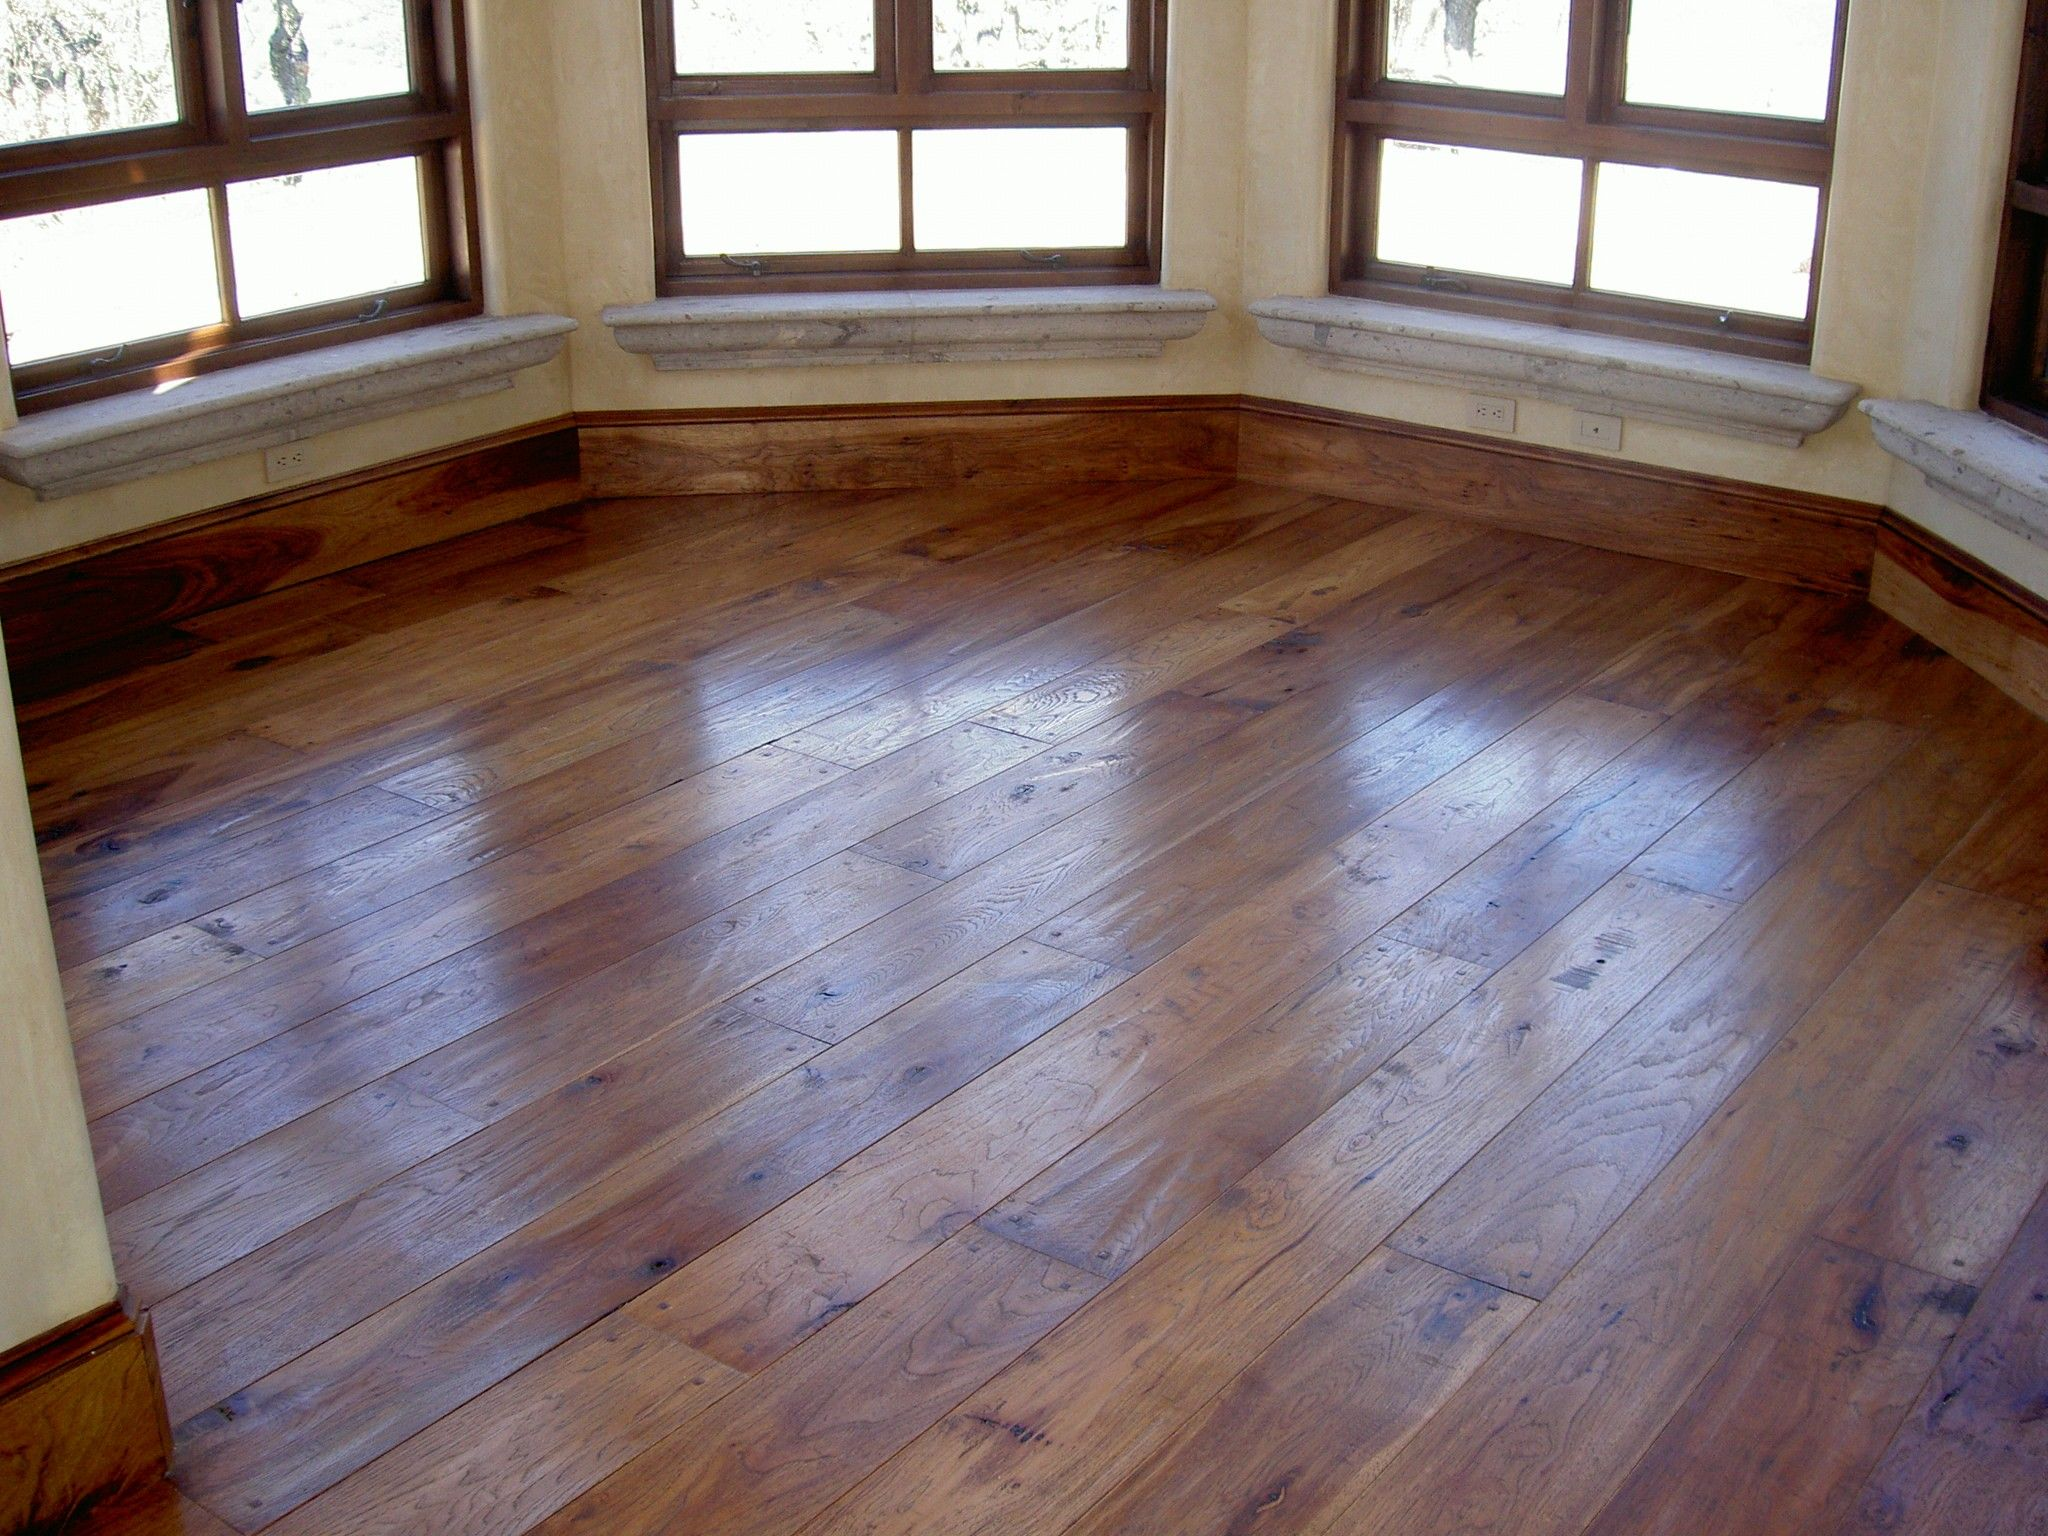 interior-brown-varnished-plywood-floor-combined-with-brown-wooden